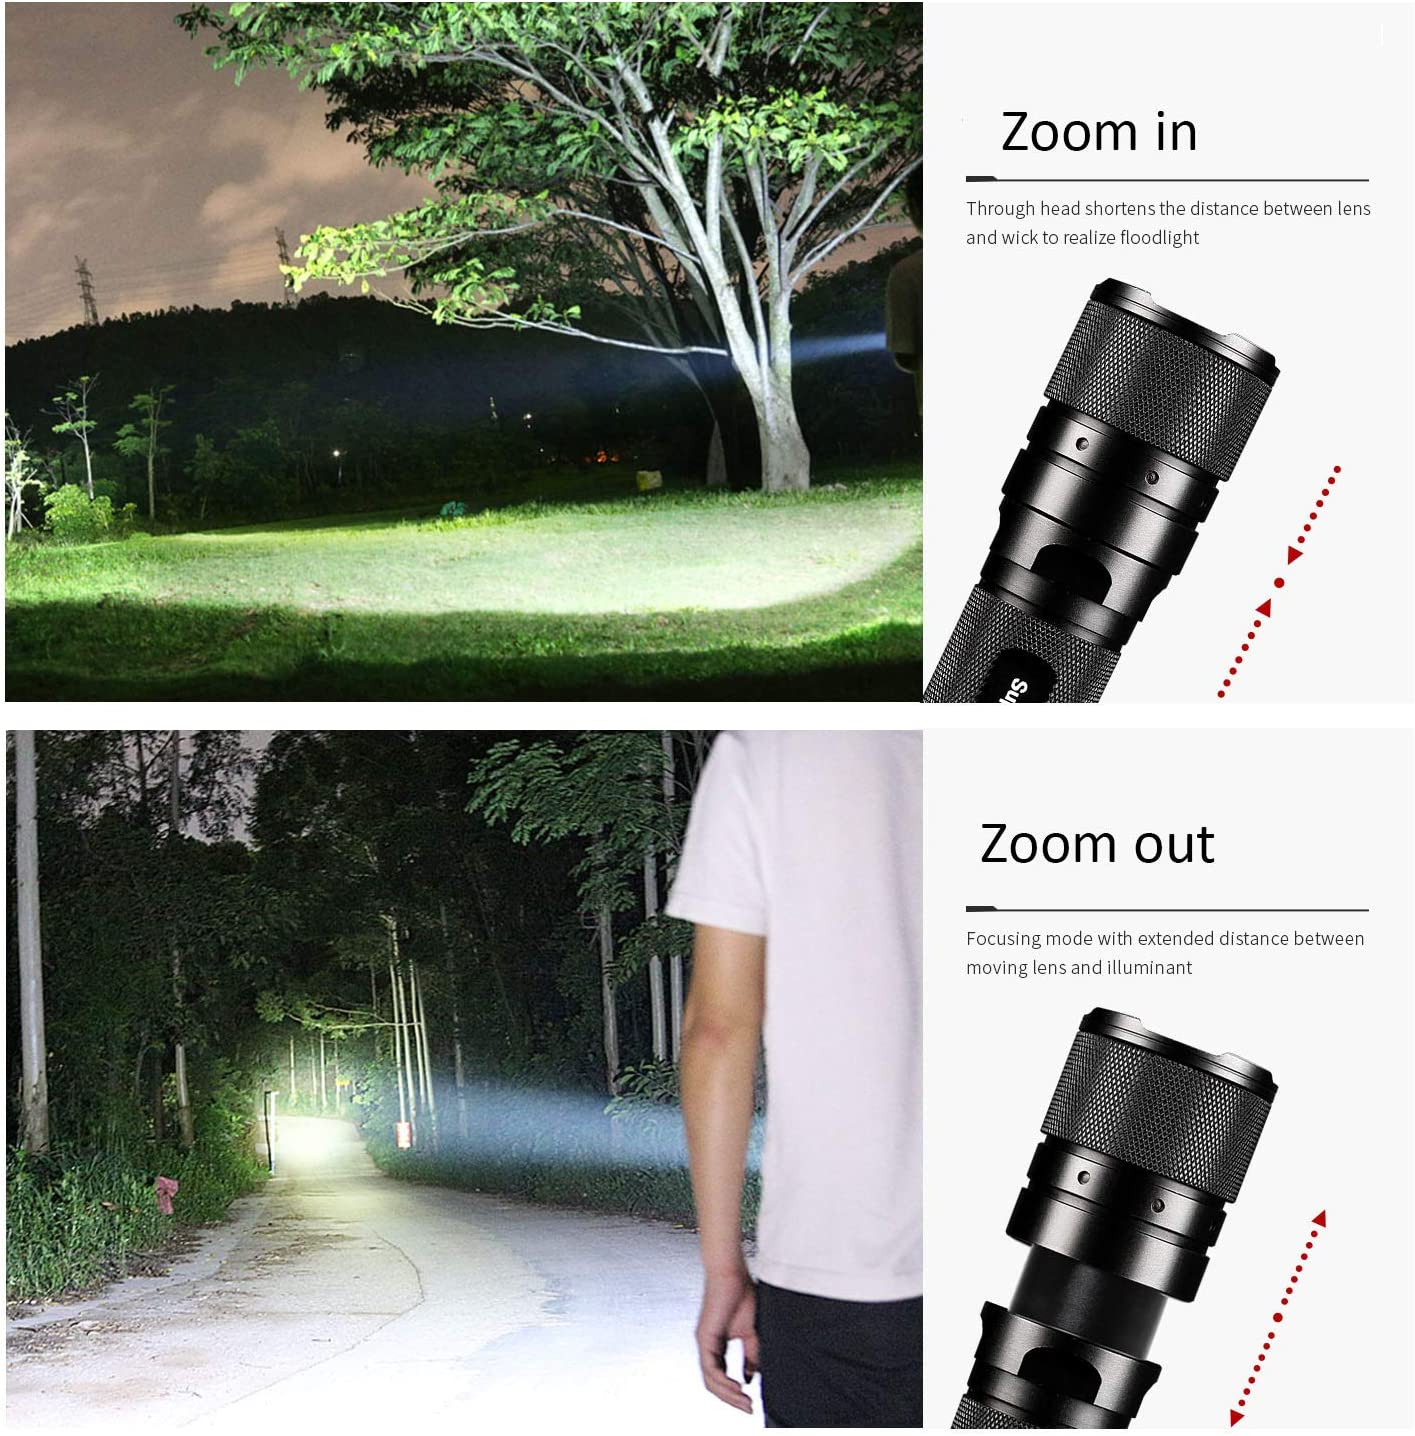 600 Lumens Zoomable Tactical Flashlight,Cree Led Torch Compatible with 18650 and AAA Battery Ultra Bright Waterproof Small Flashlight Perfect for Hiking Camping Outdoors